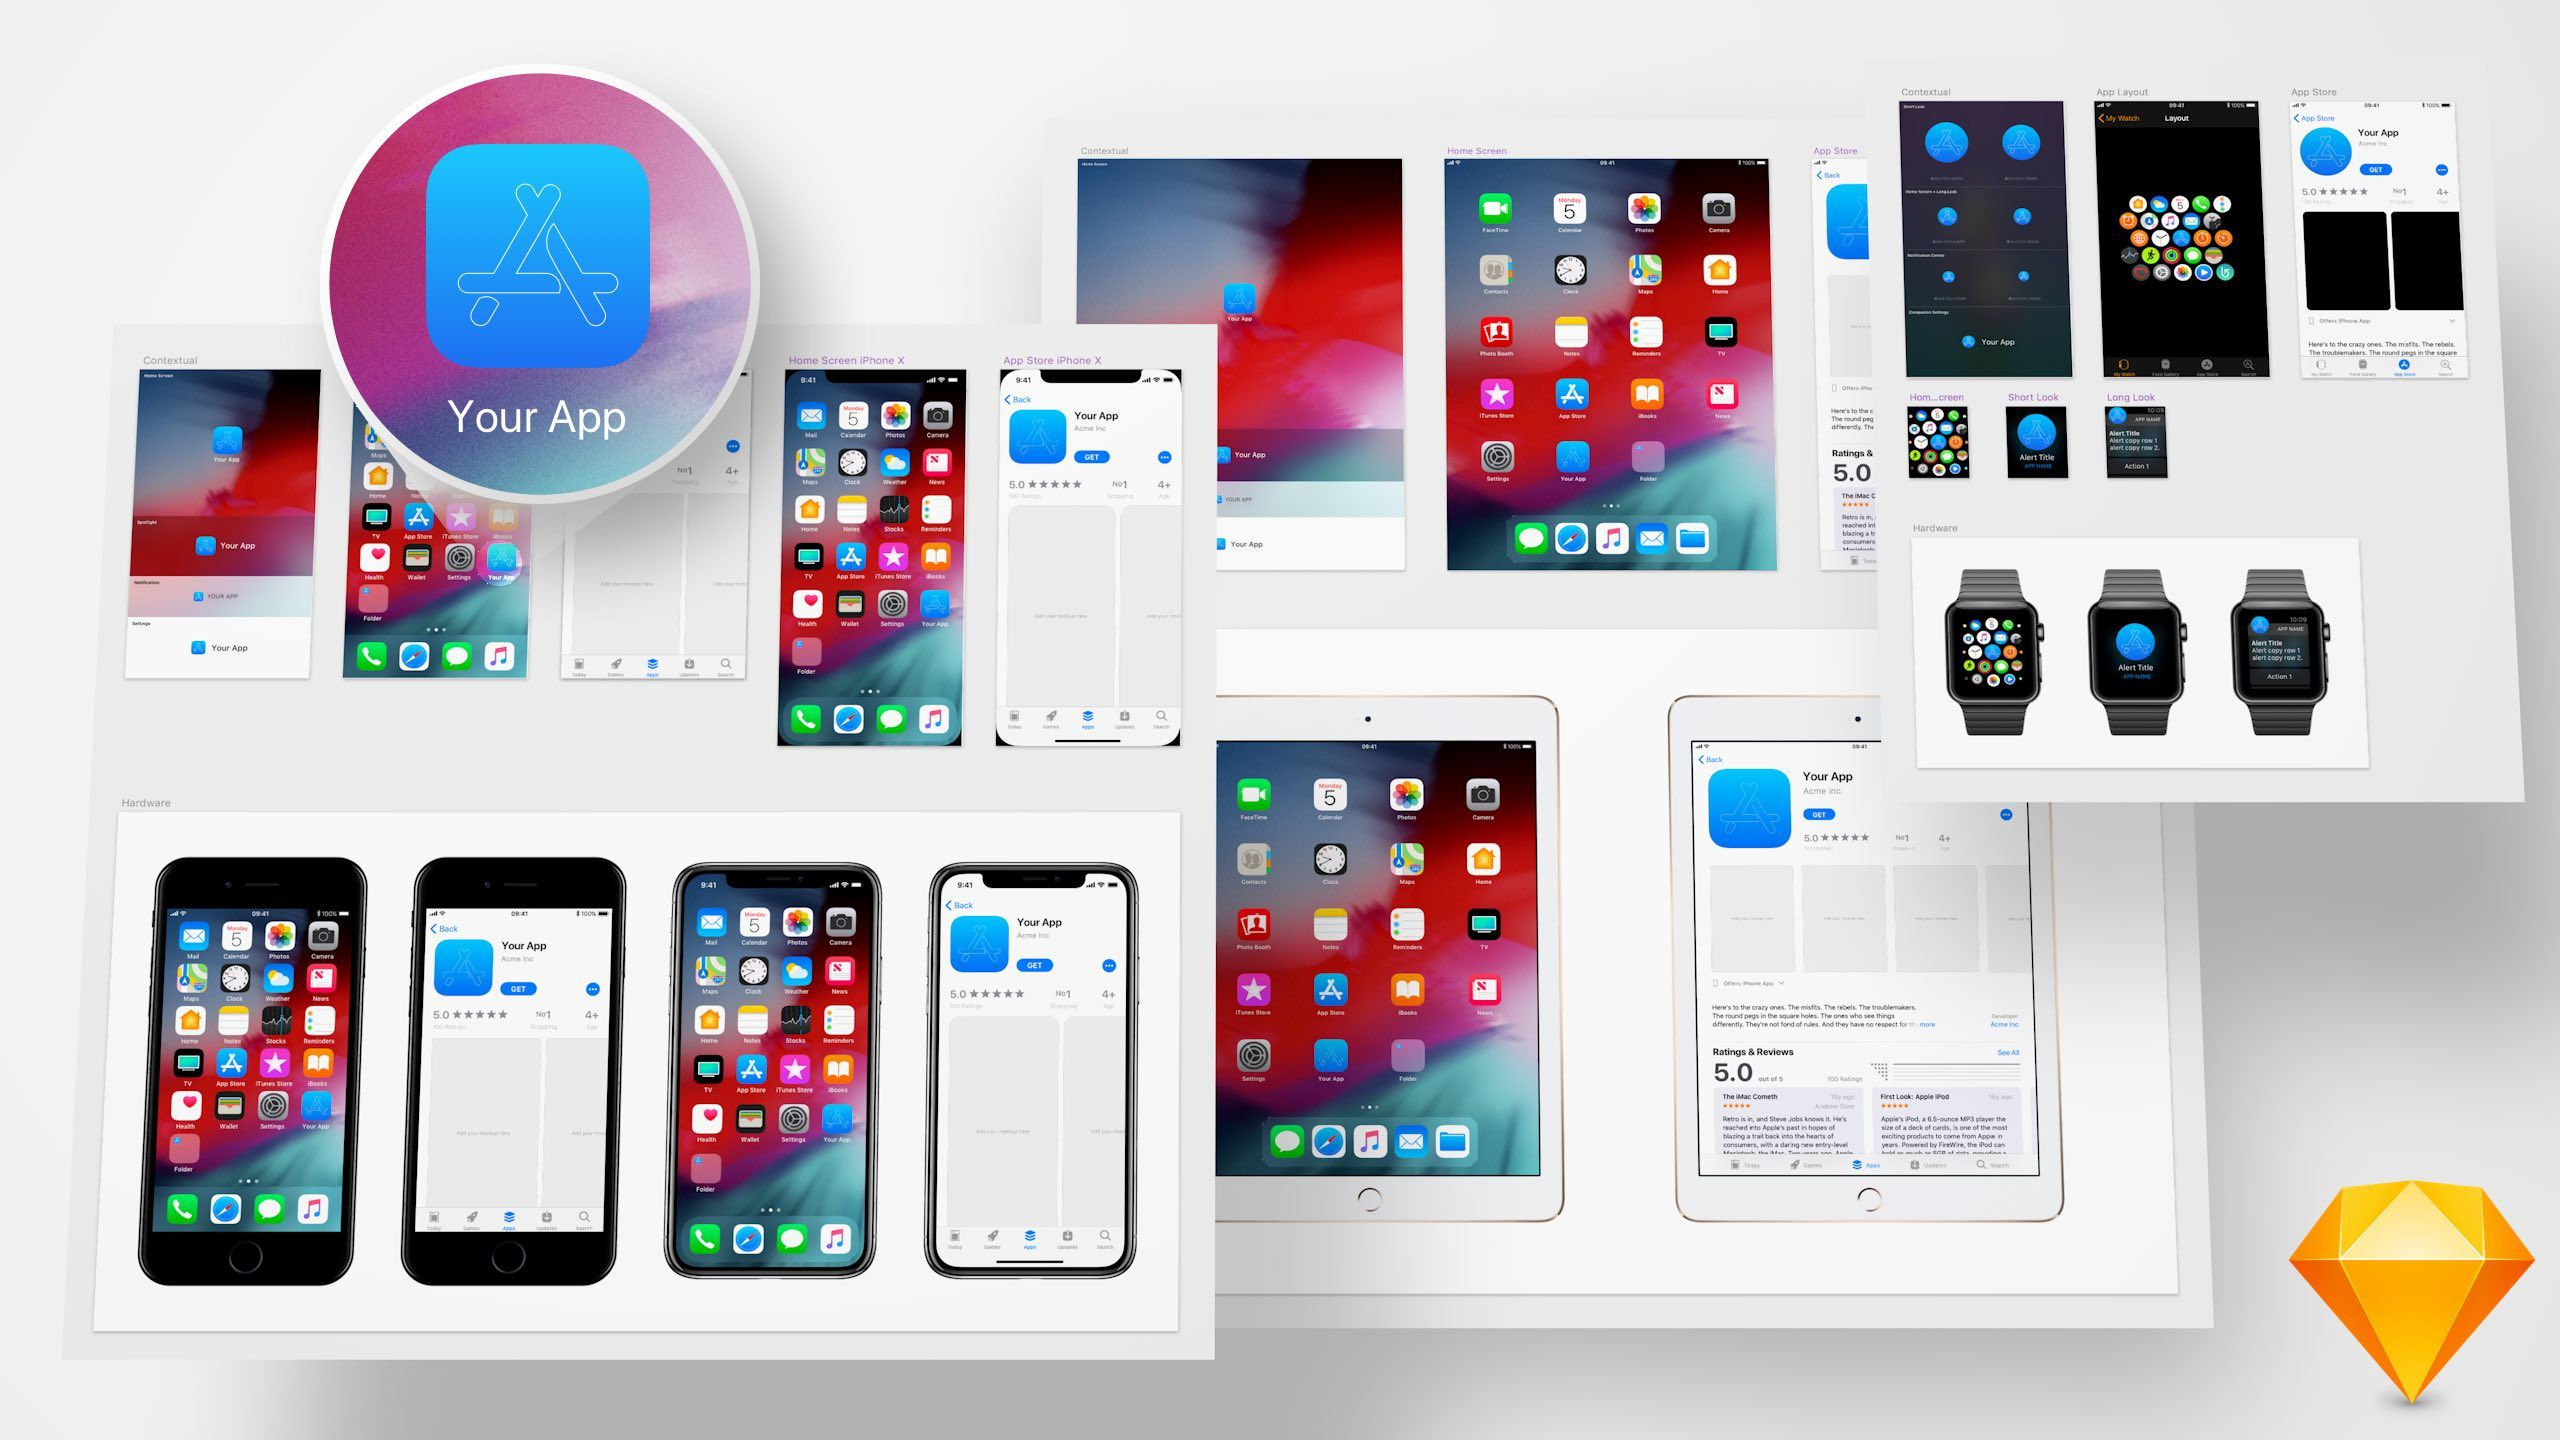 >Meticulously crafted icon template for iPhone, iPhone X